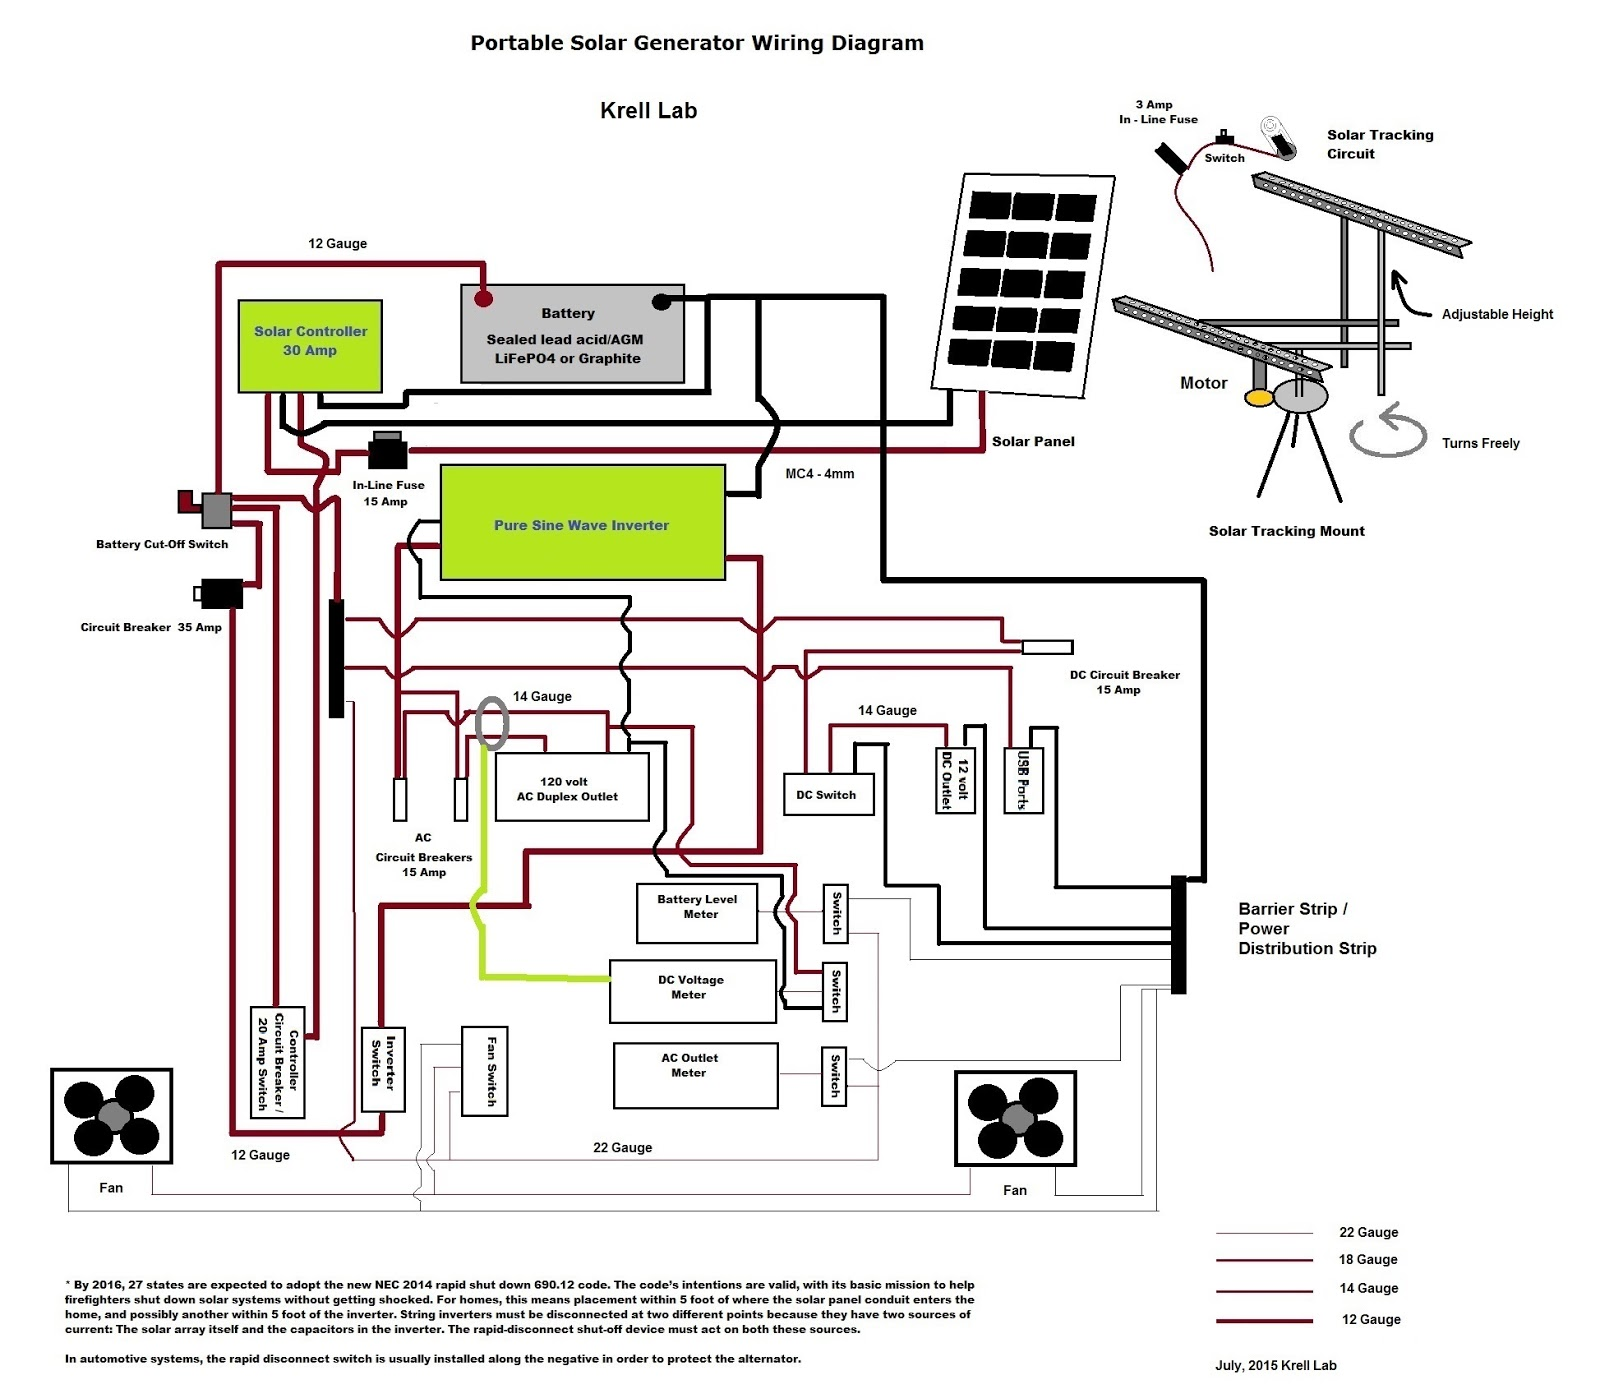 hight resolution of wrg 9165 lowe sunchaser pontoon wiring diagramthe krell lab portable solar generator in a battery